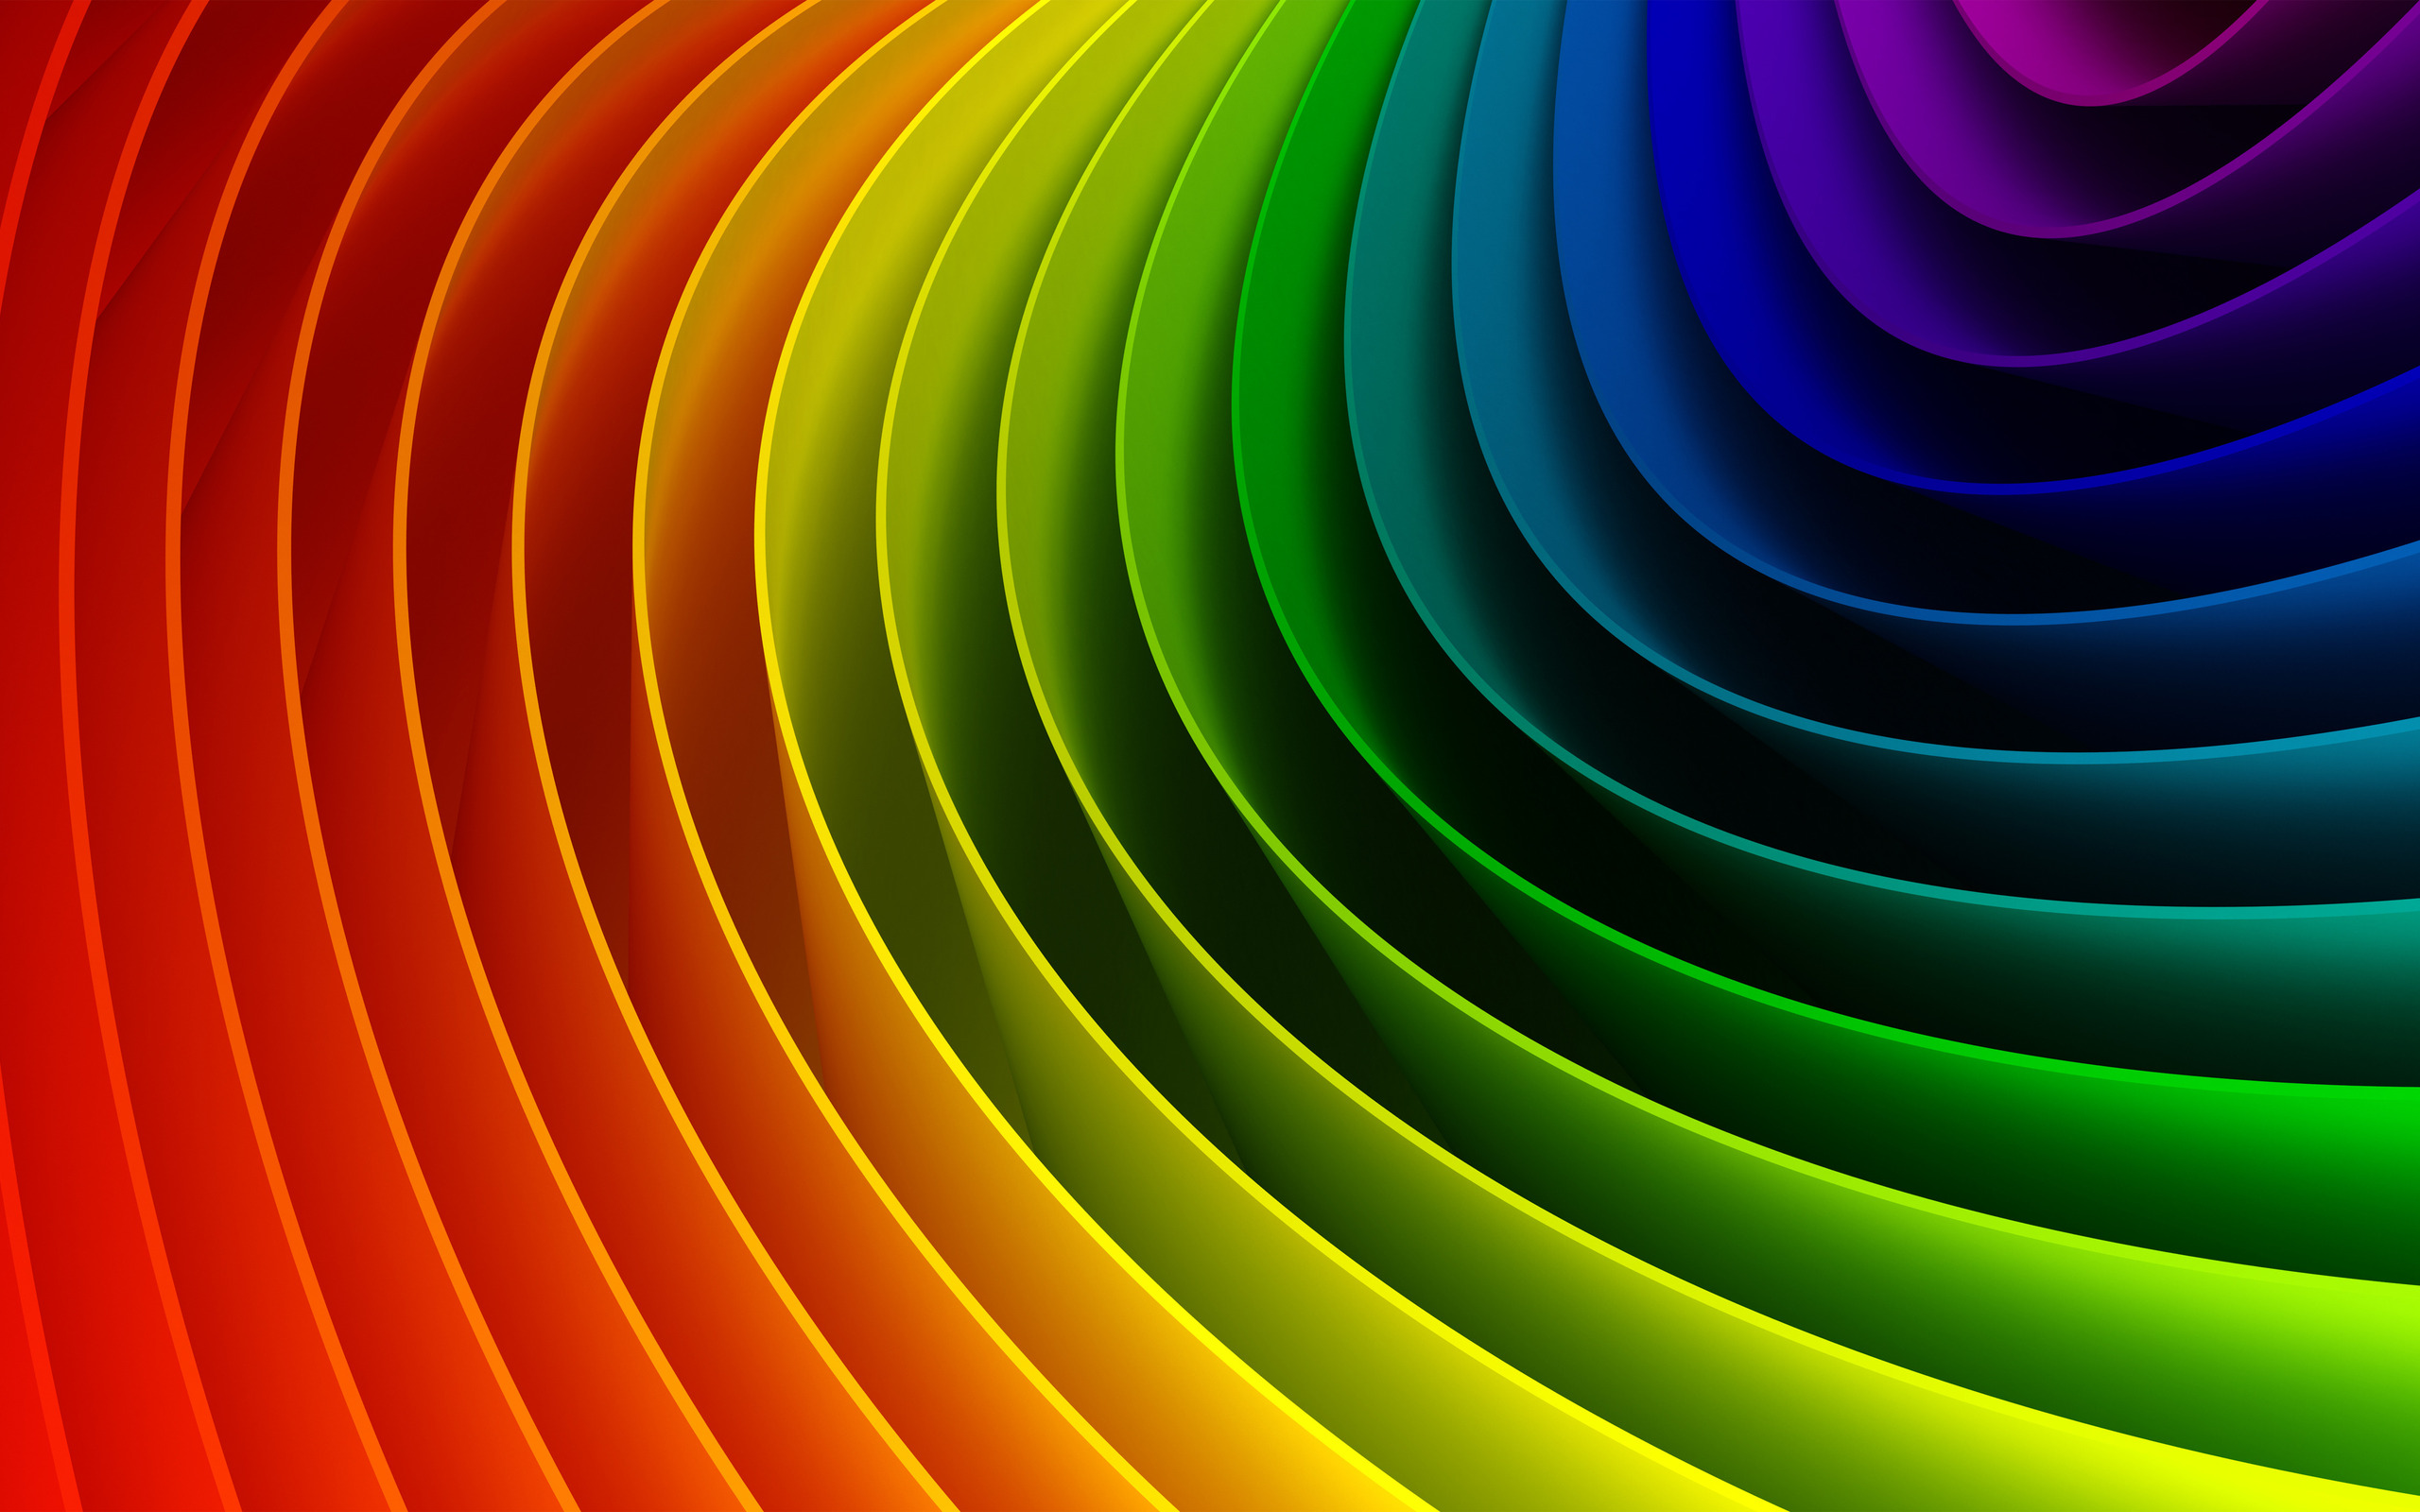 Color spectrum wallpapers and images   wallpapers pictures photos 2560x1600